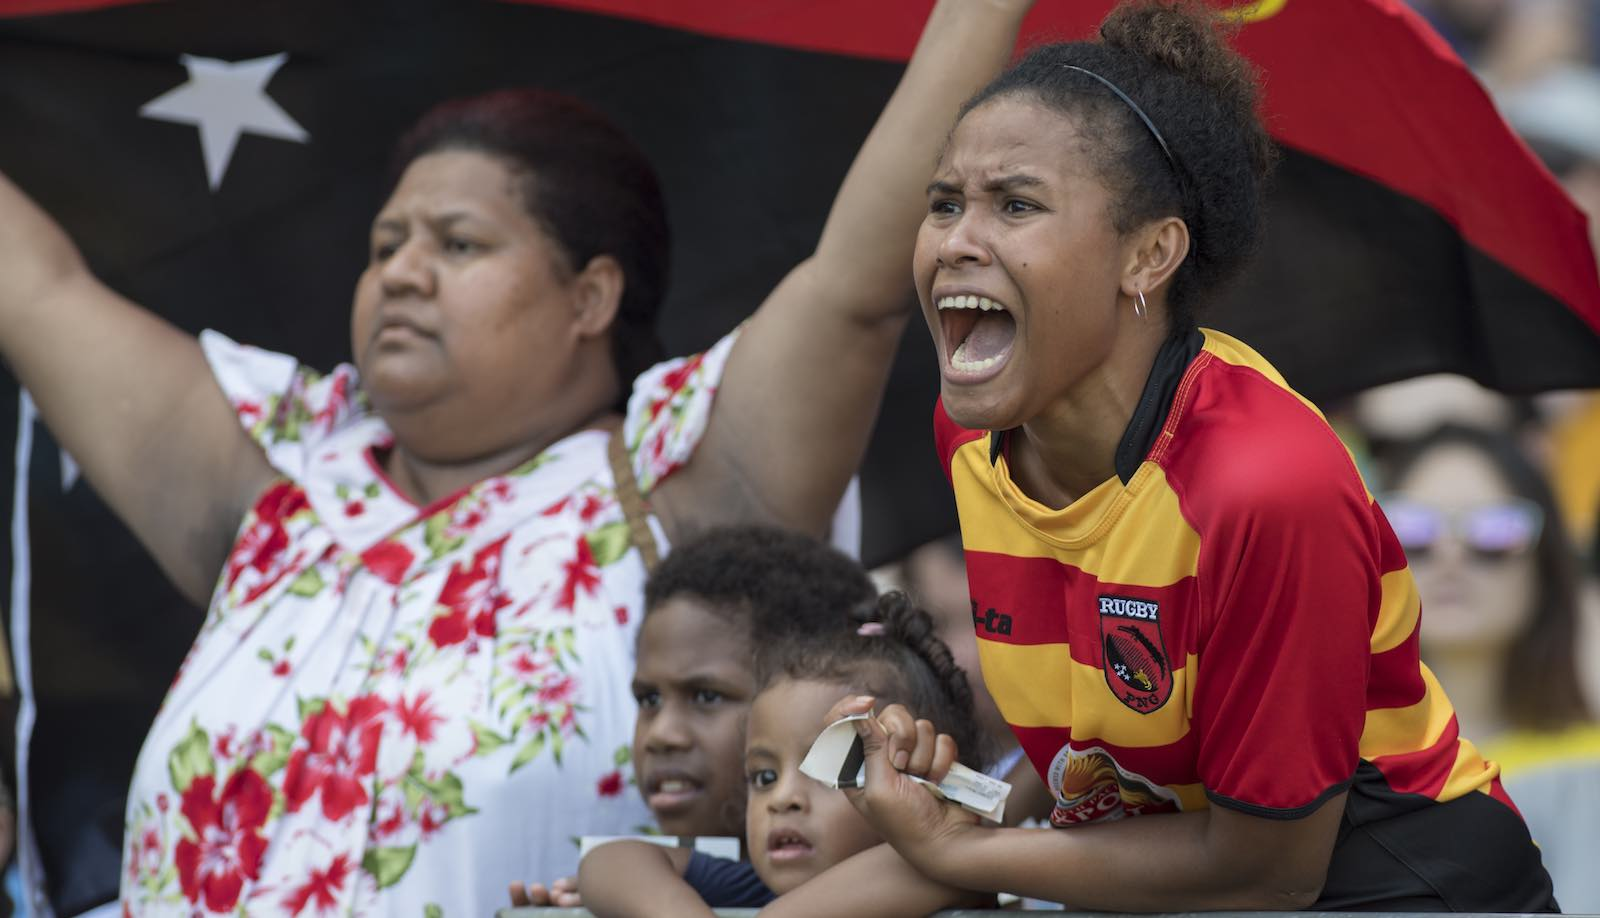 Fans from Papua New Guinea cheer their team at Allianz Stadium in Sydney, February 2017 (Photo: James D. Morgan via Getty)